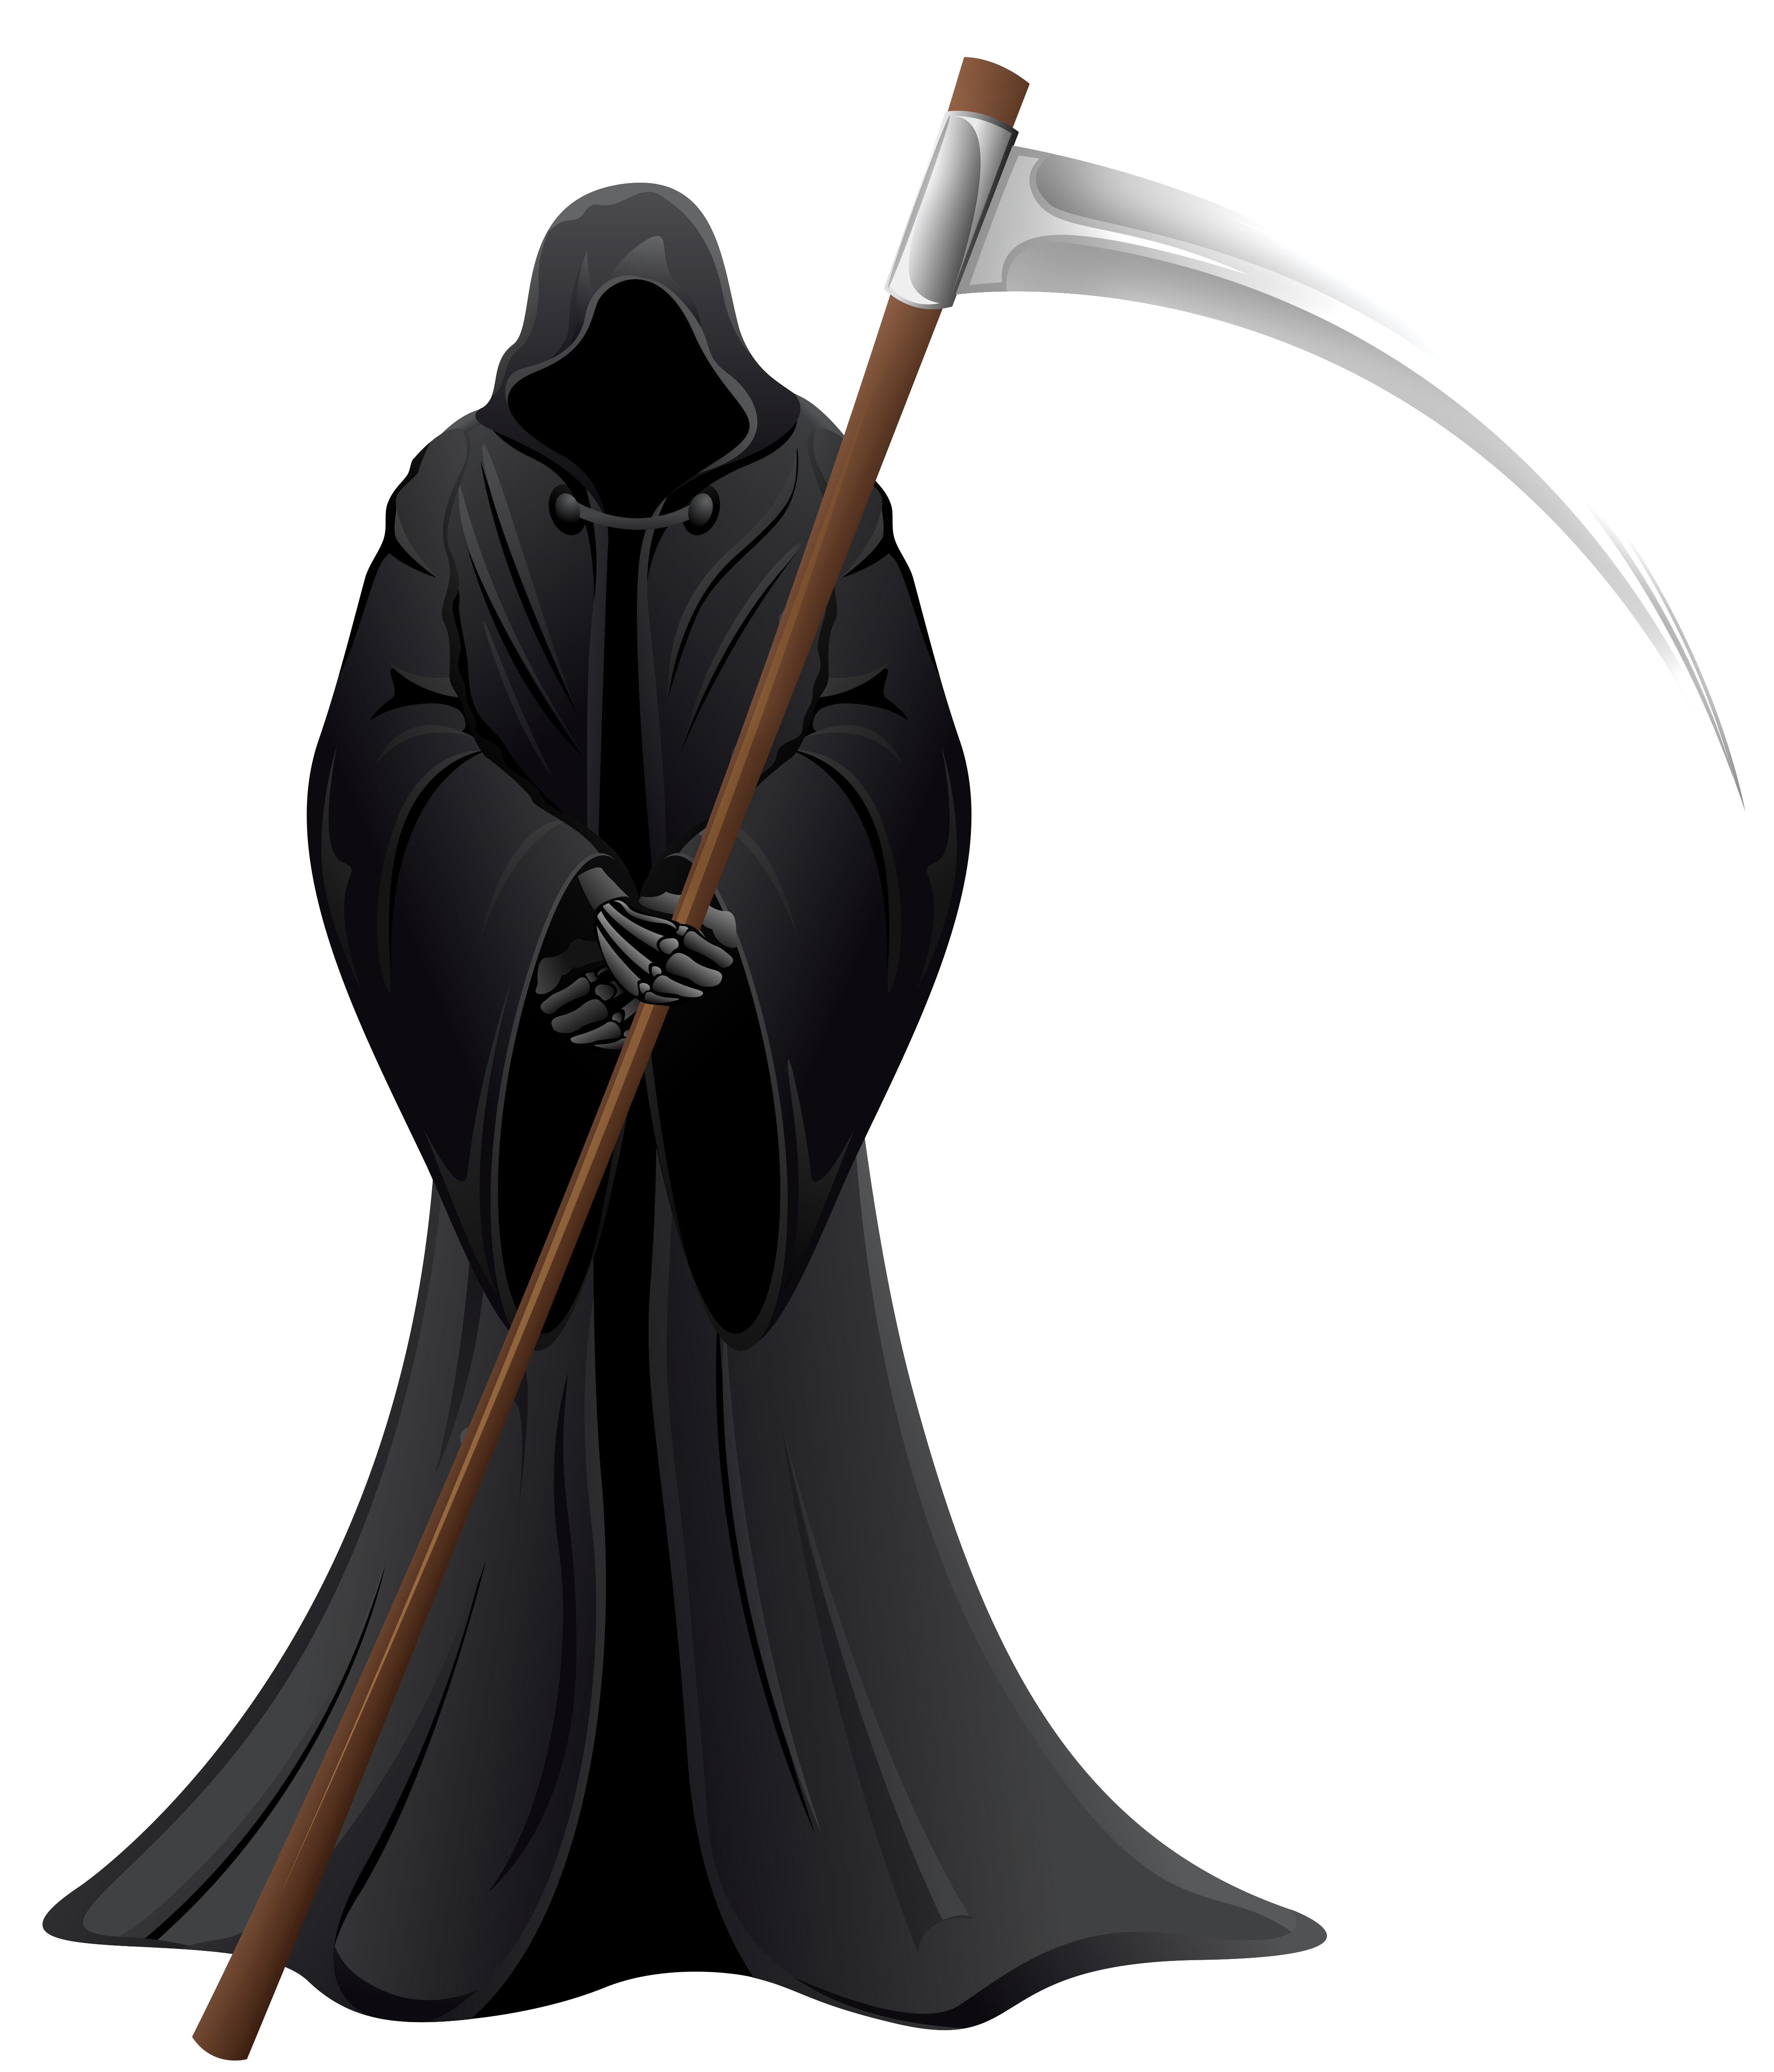 4409x5150 Grim Reaper Png Vector Clipartu200b Gallery Yopriceville